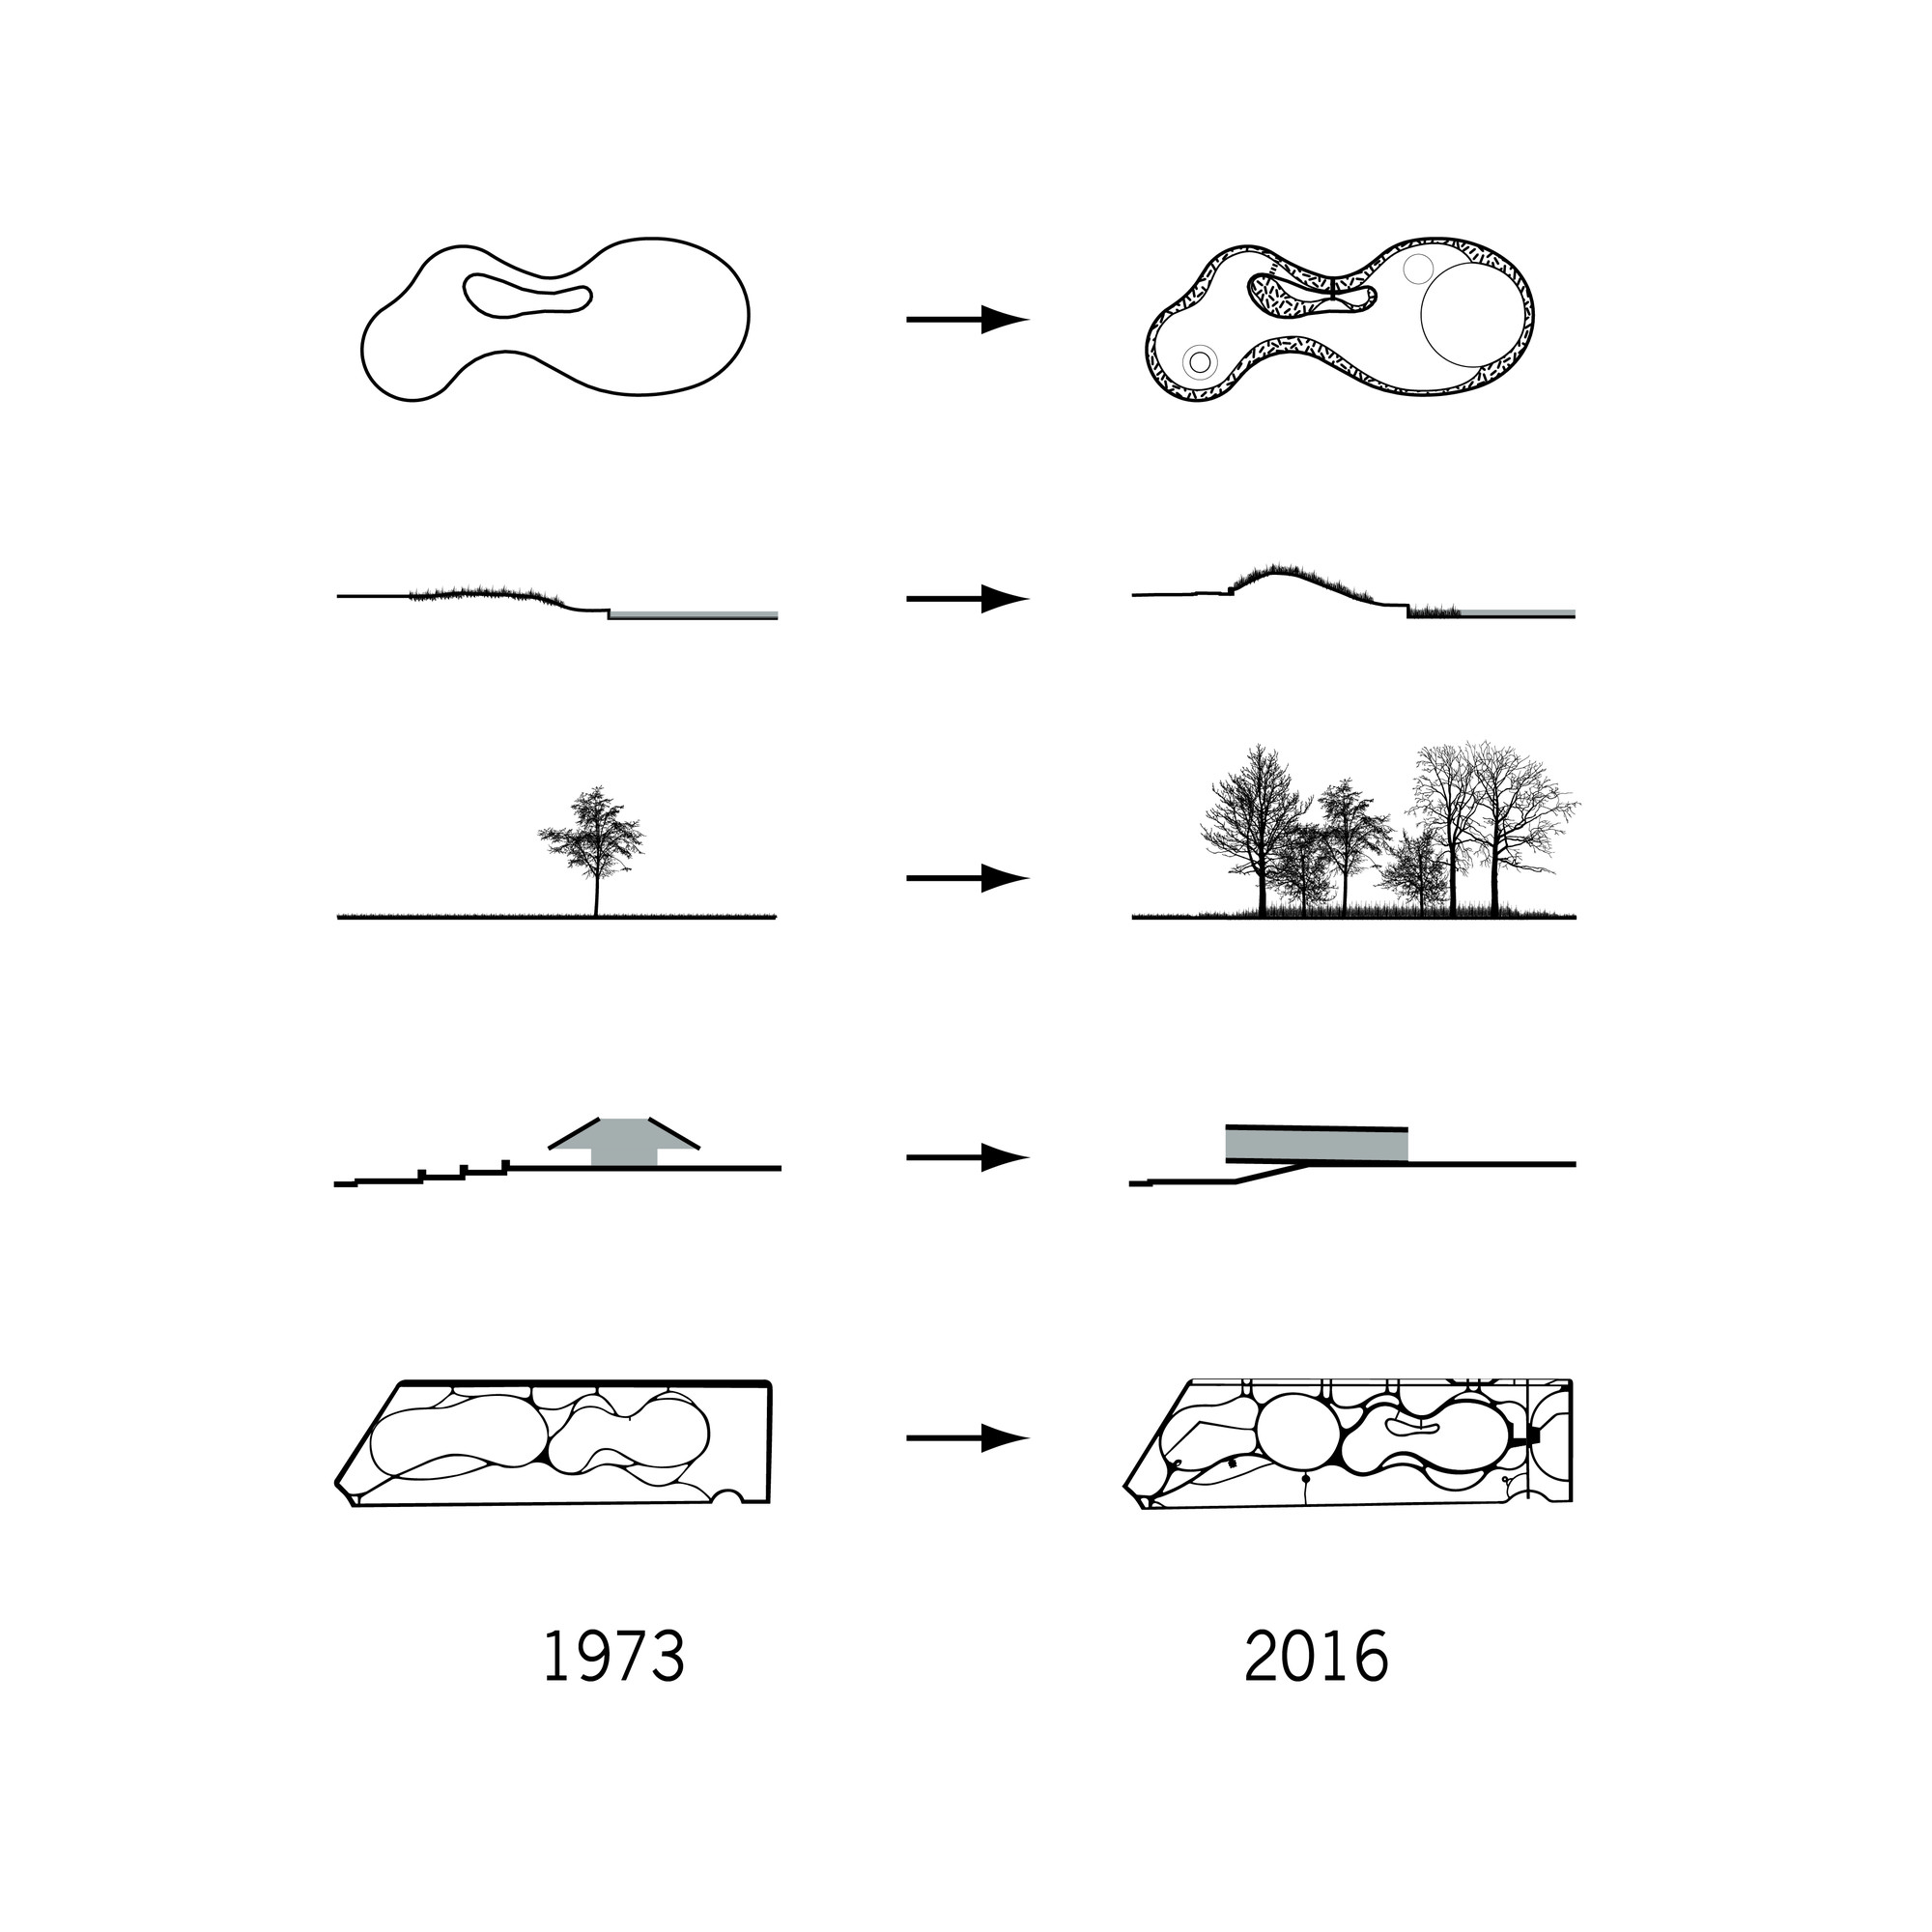 medium resolution of rogers partners and pwp s constitution gardens redesign approved for national mall concept diagram image pwp landscape architecture